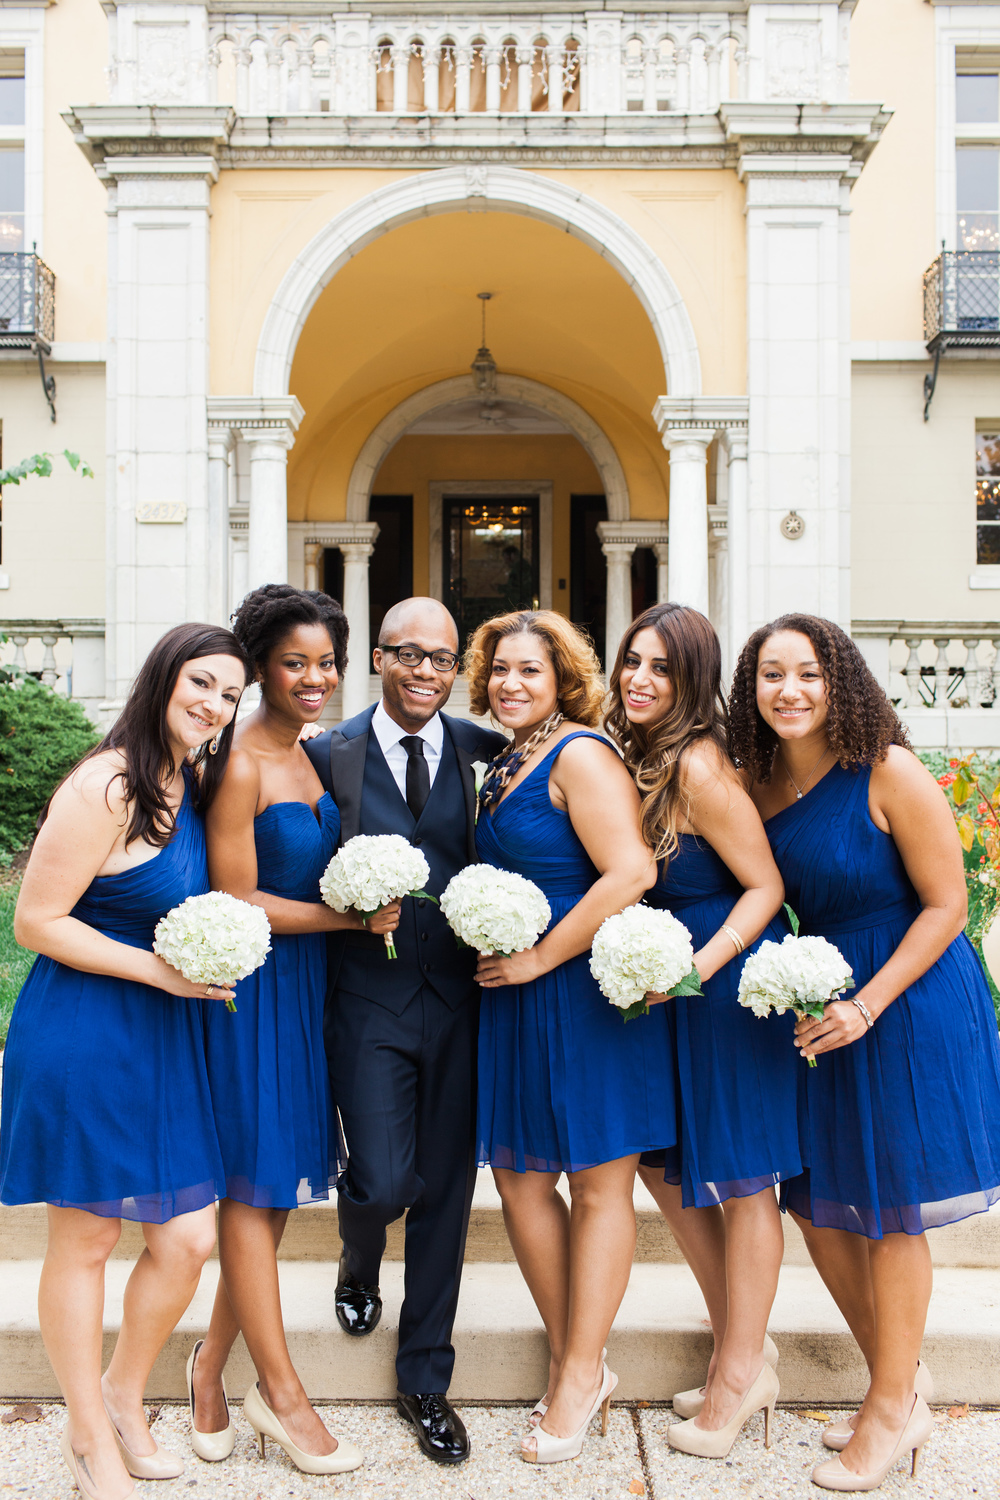 Anthony+Darius_Bridal-Party-0020-October-112014.jpg